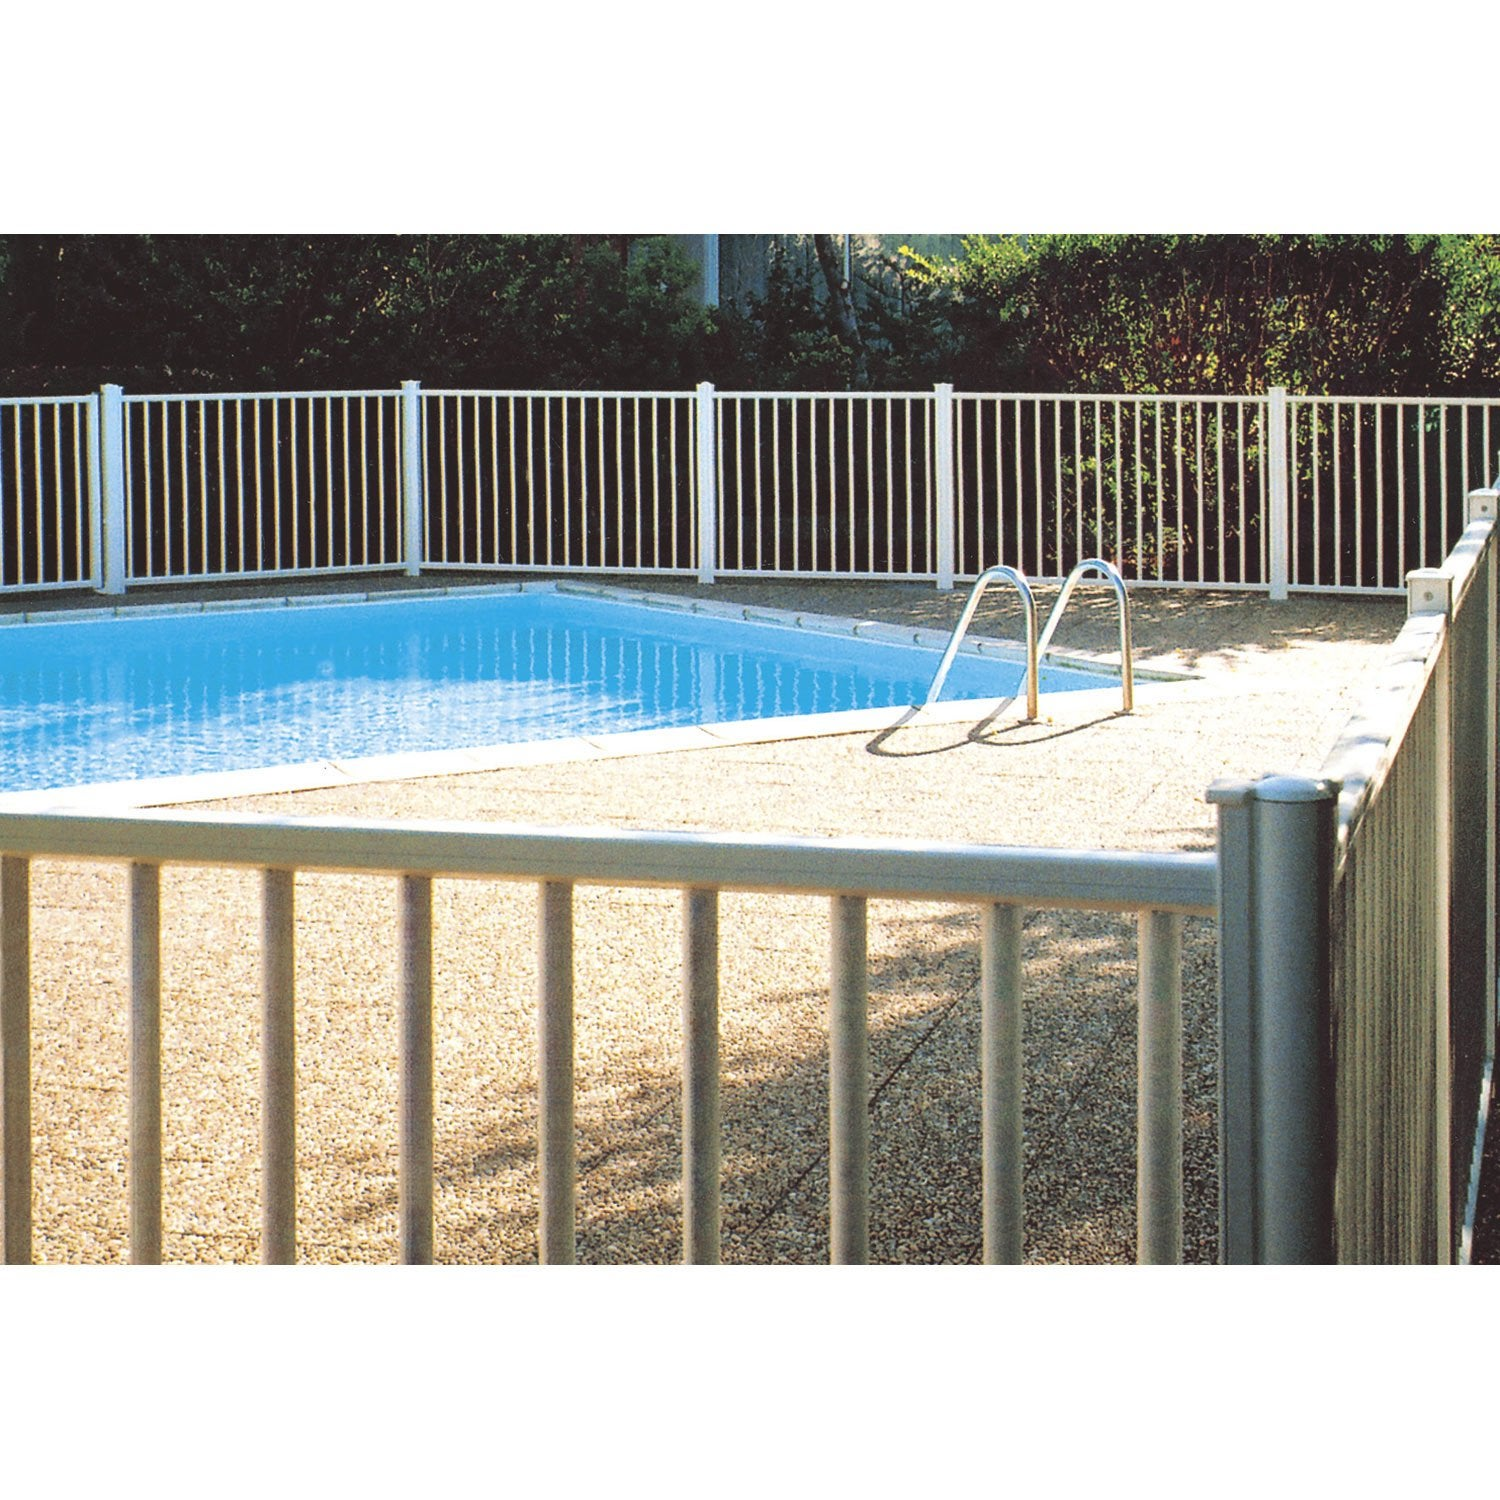 Barri re pour piscine aluminium issambres blanc 9010 h for Barriere de piscine leroy merlin